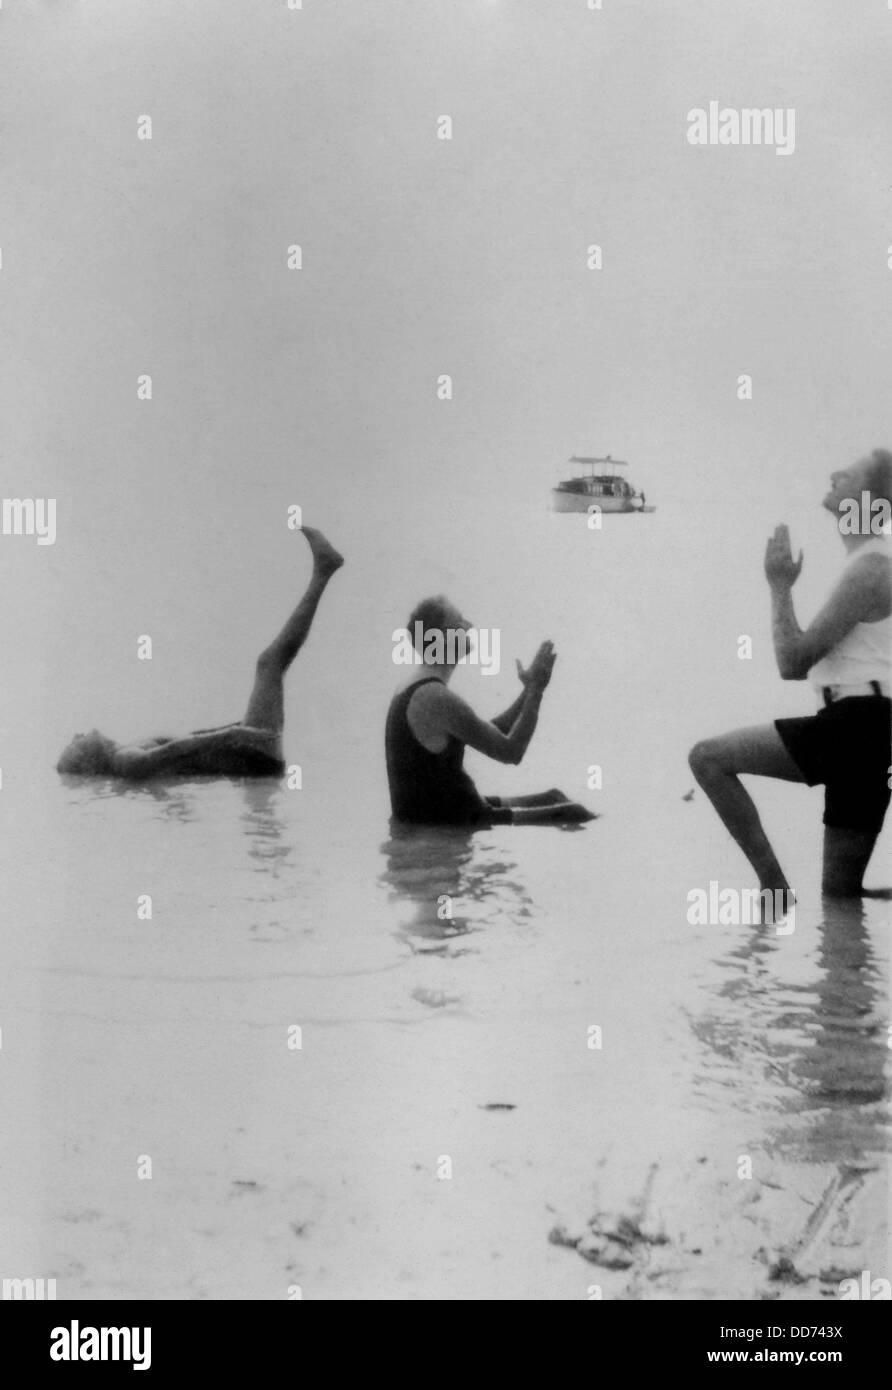 Franklin Roosevelt, Maunsell Crosby, and Oswald Mosley in playful poses. Florida 1926. Maunsell Crosby was a expert - Stock Image